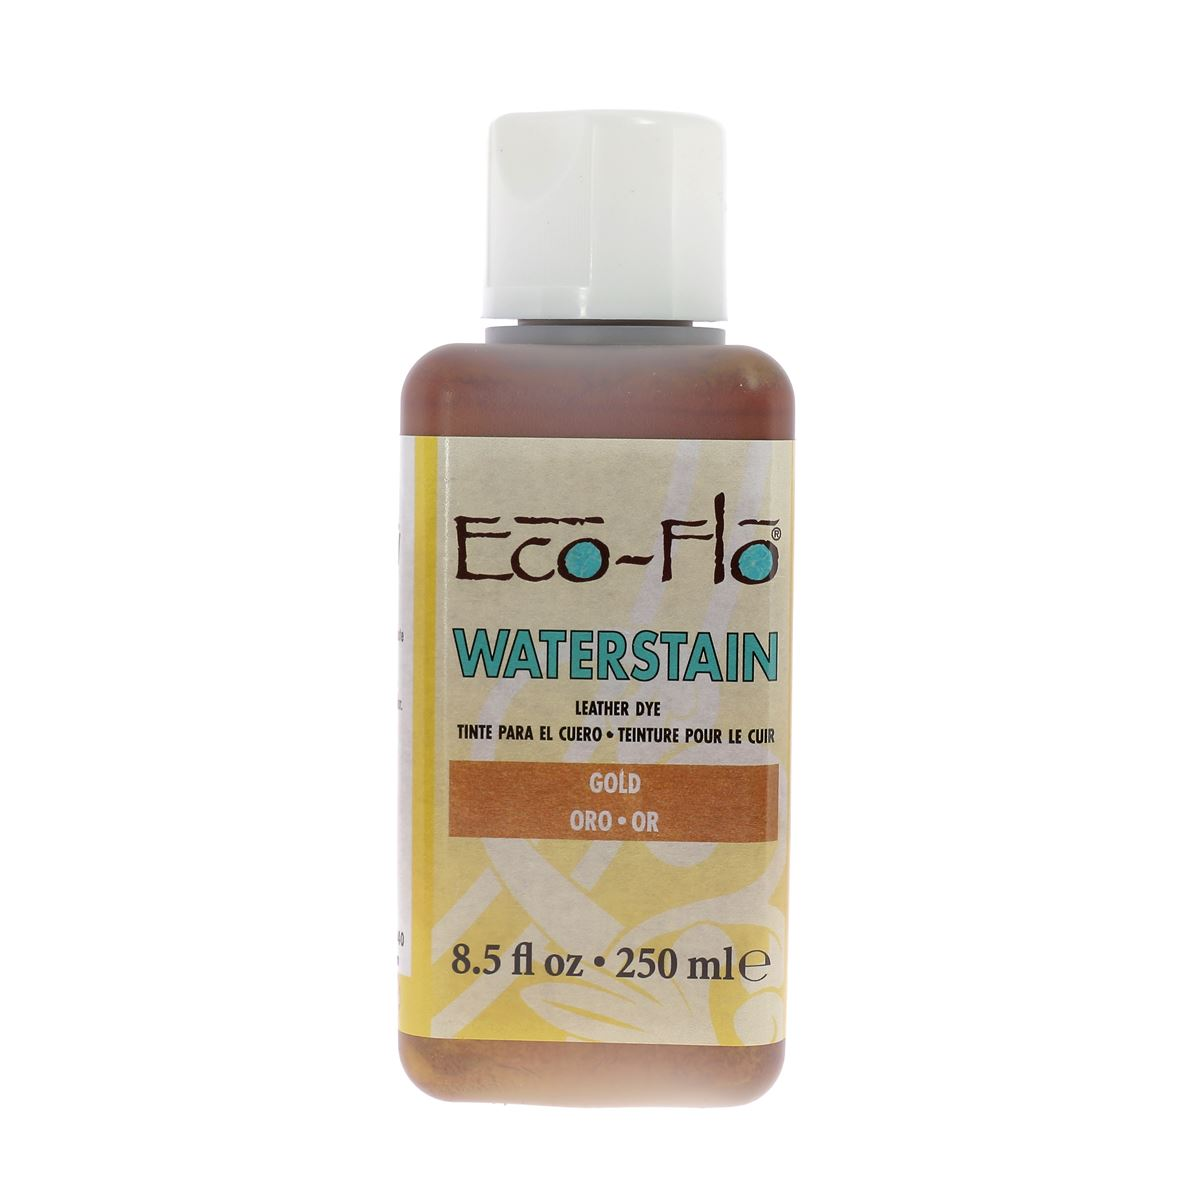 Additif pour teinture ECO-FLO WATERSTAIN - OR / GOLD- 250ml